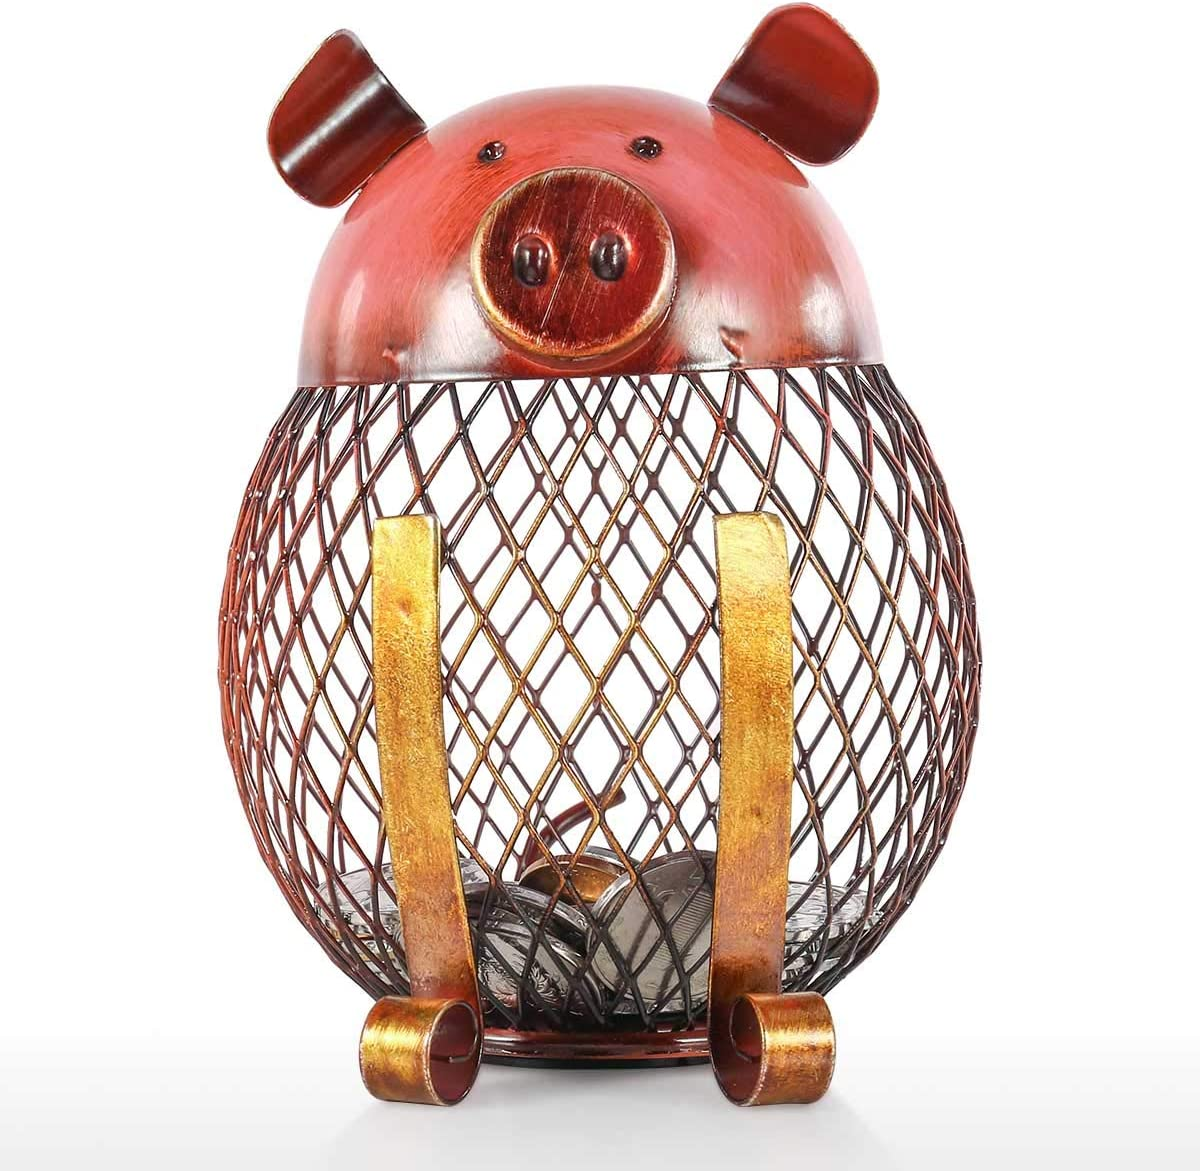 Walmeck Piggy Bank Children Toy Bank Iron Coin Holder Boy Girls Coin Money Cash Saving Box for Decoration or Gift